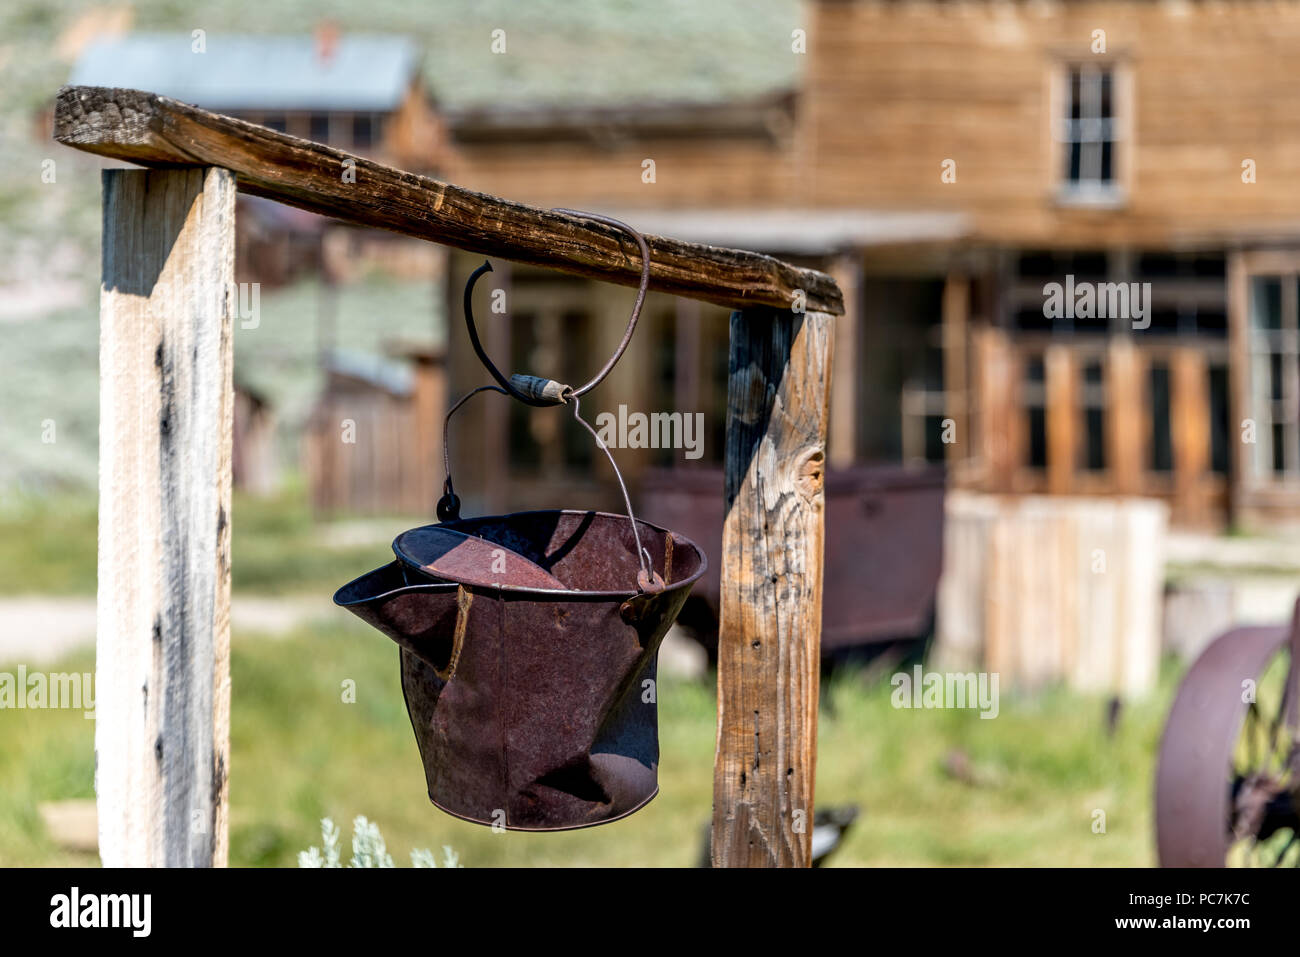 A rusty pail hangs above a one-time well in the abandoned California ghost town of Bodie, now a state historic park in the eastern Sierra Mountains. Stock Photo